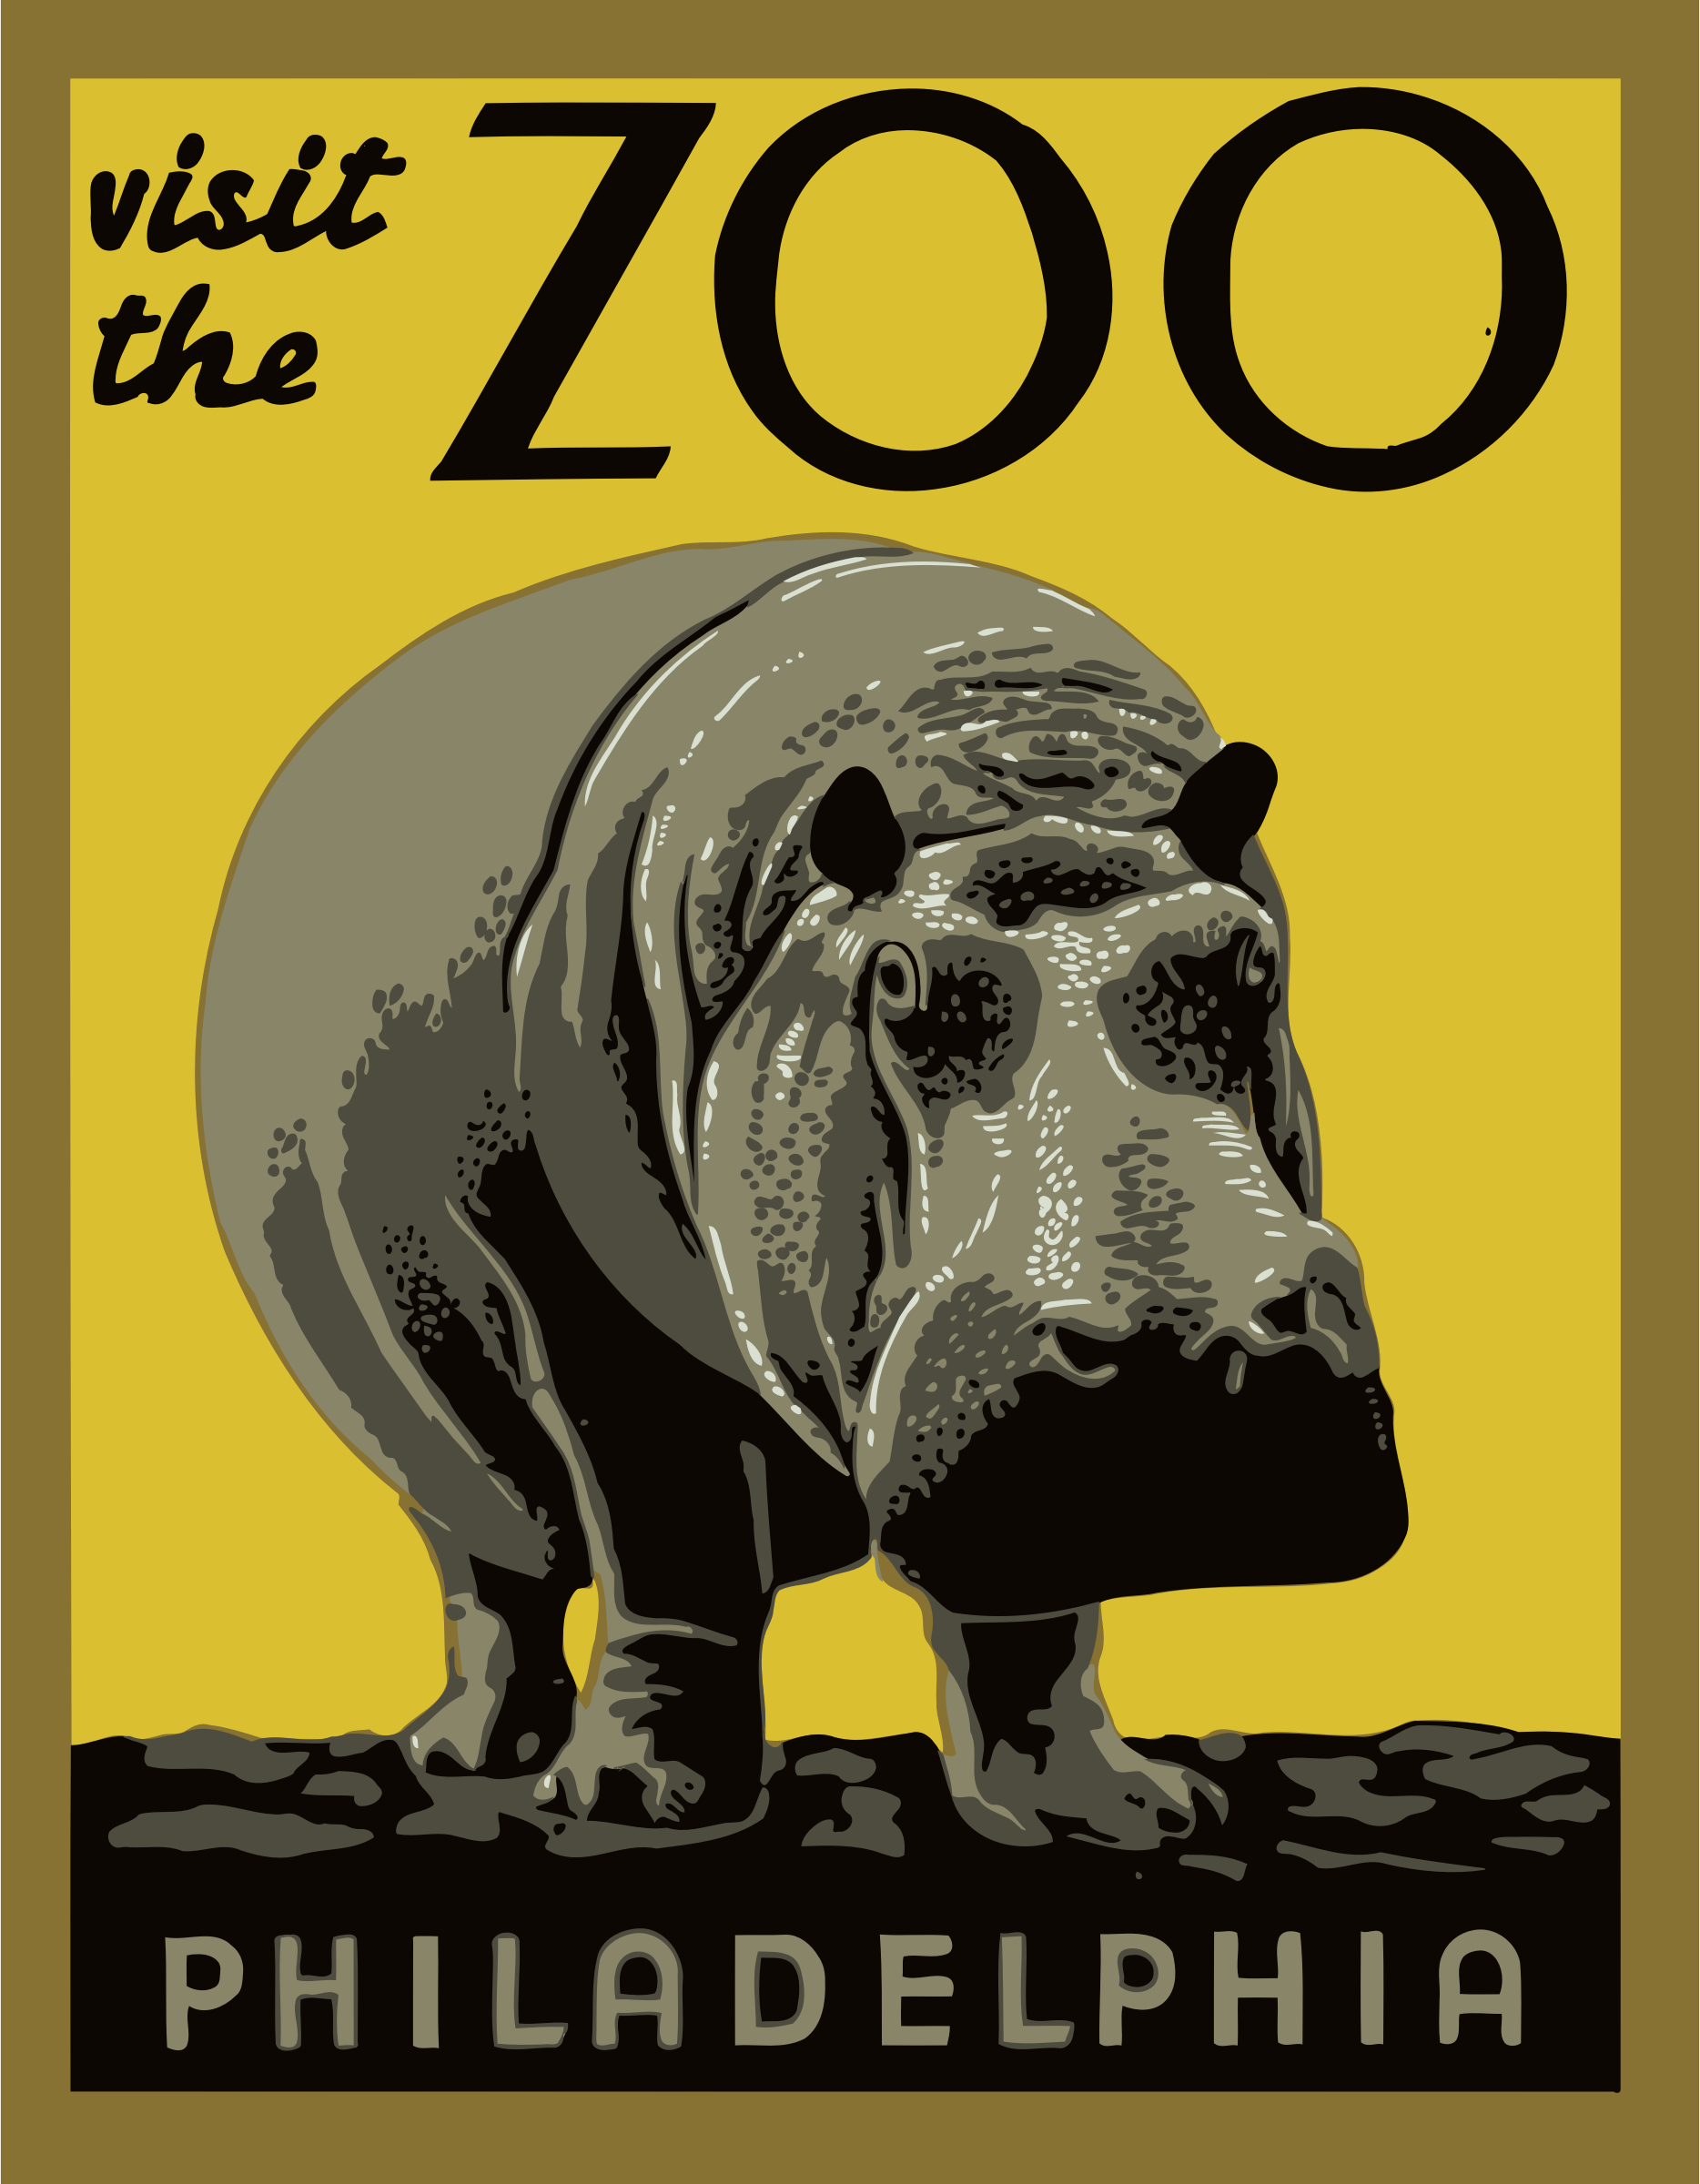 Visit the zoo poster 2 by Firkin